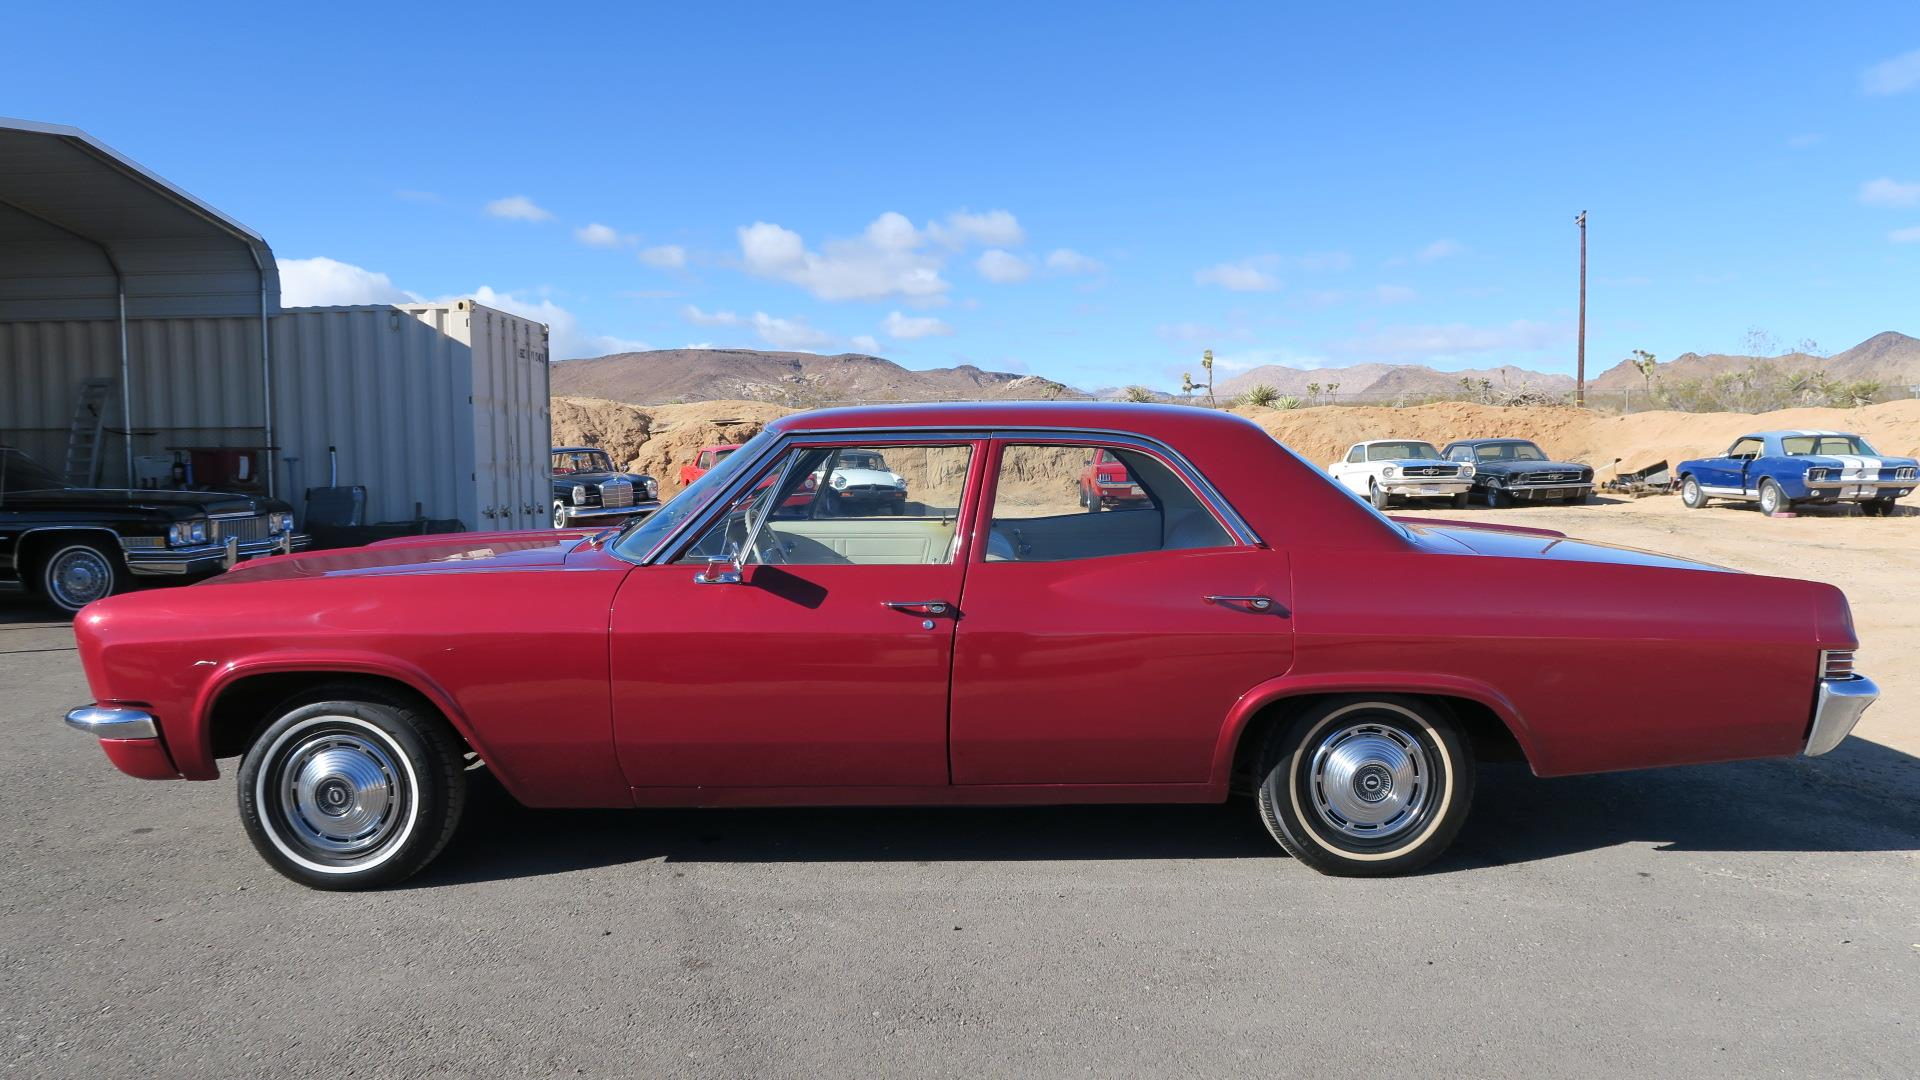 1966 Chevrolet Impala Sedan Ca Car 350 V8 Only 3200 Miles On Full Chevy Radiator Restoration